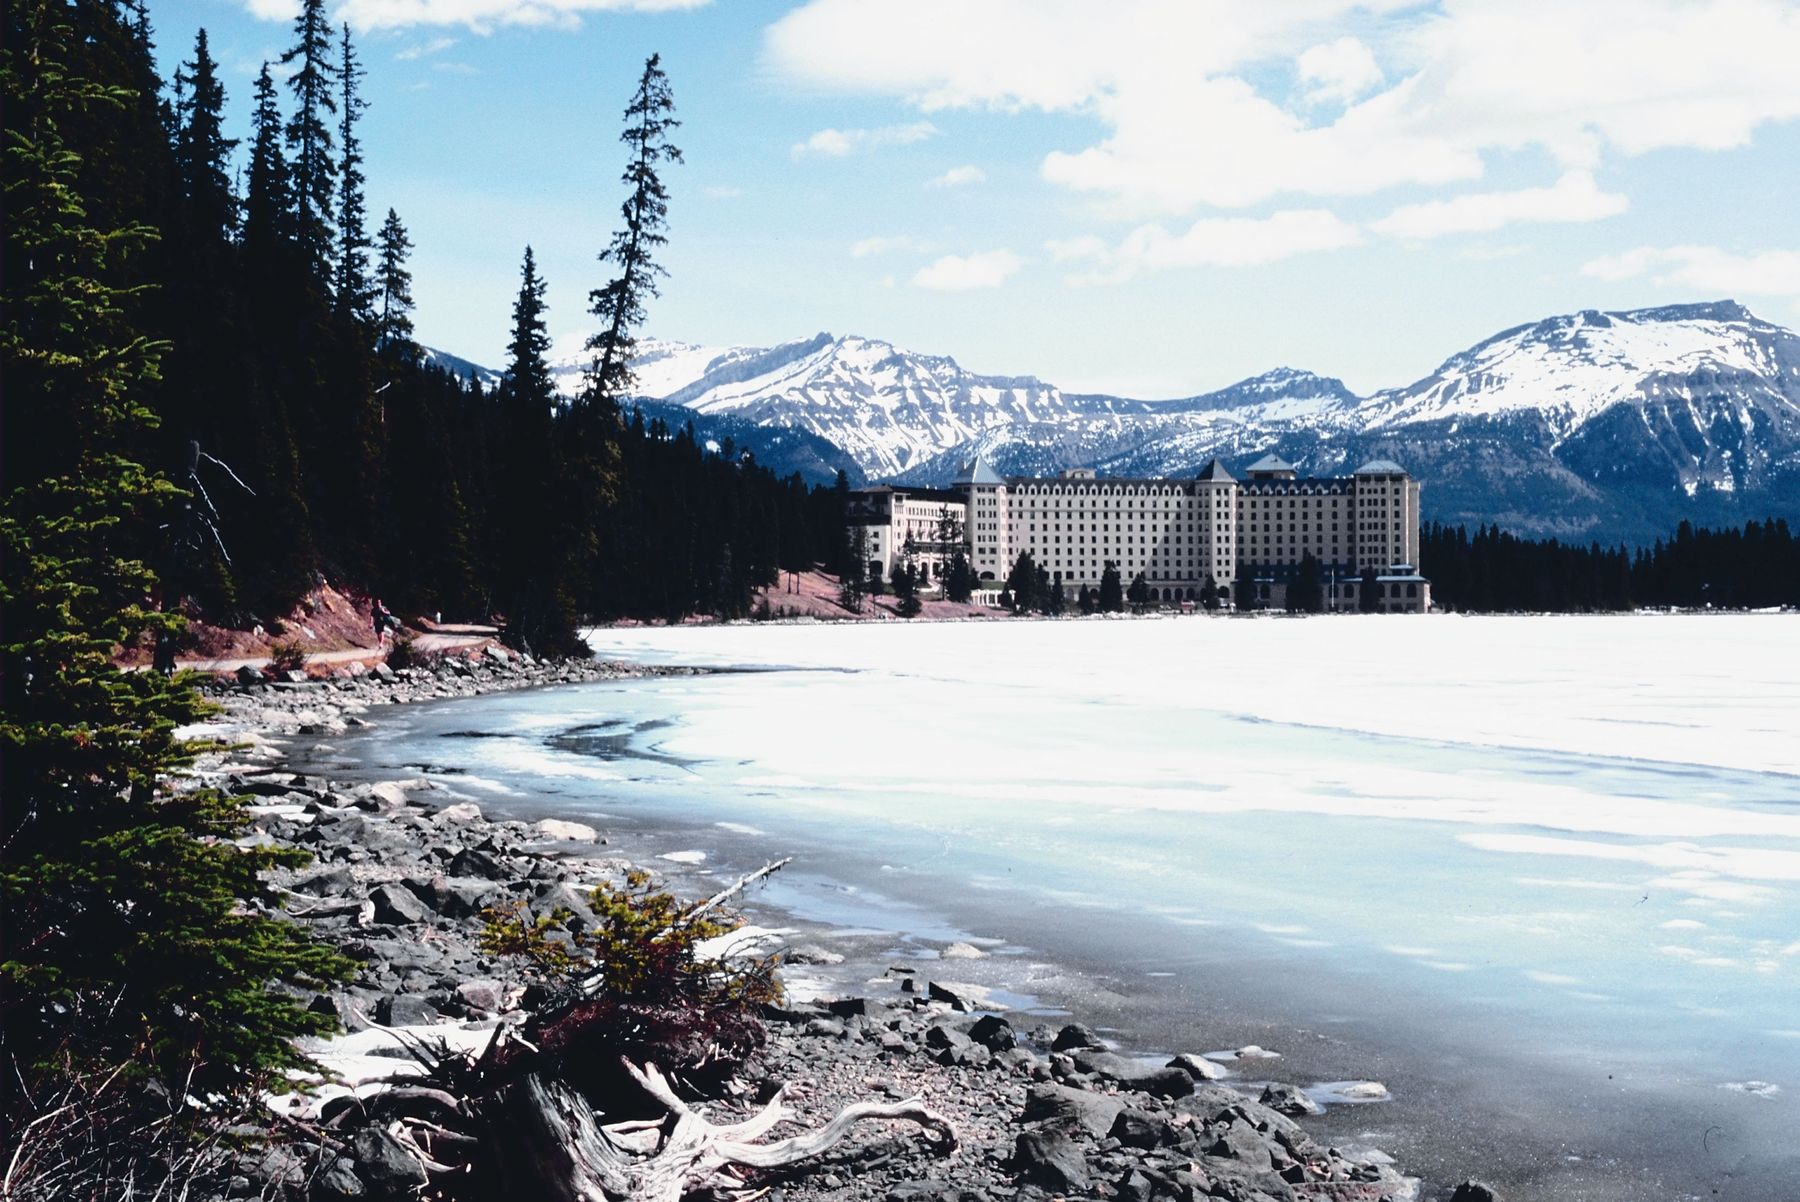 Jasper and Banff both have great accommodation choices, but Banff tends to be pricer.